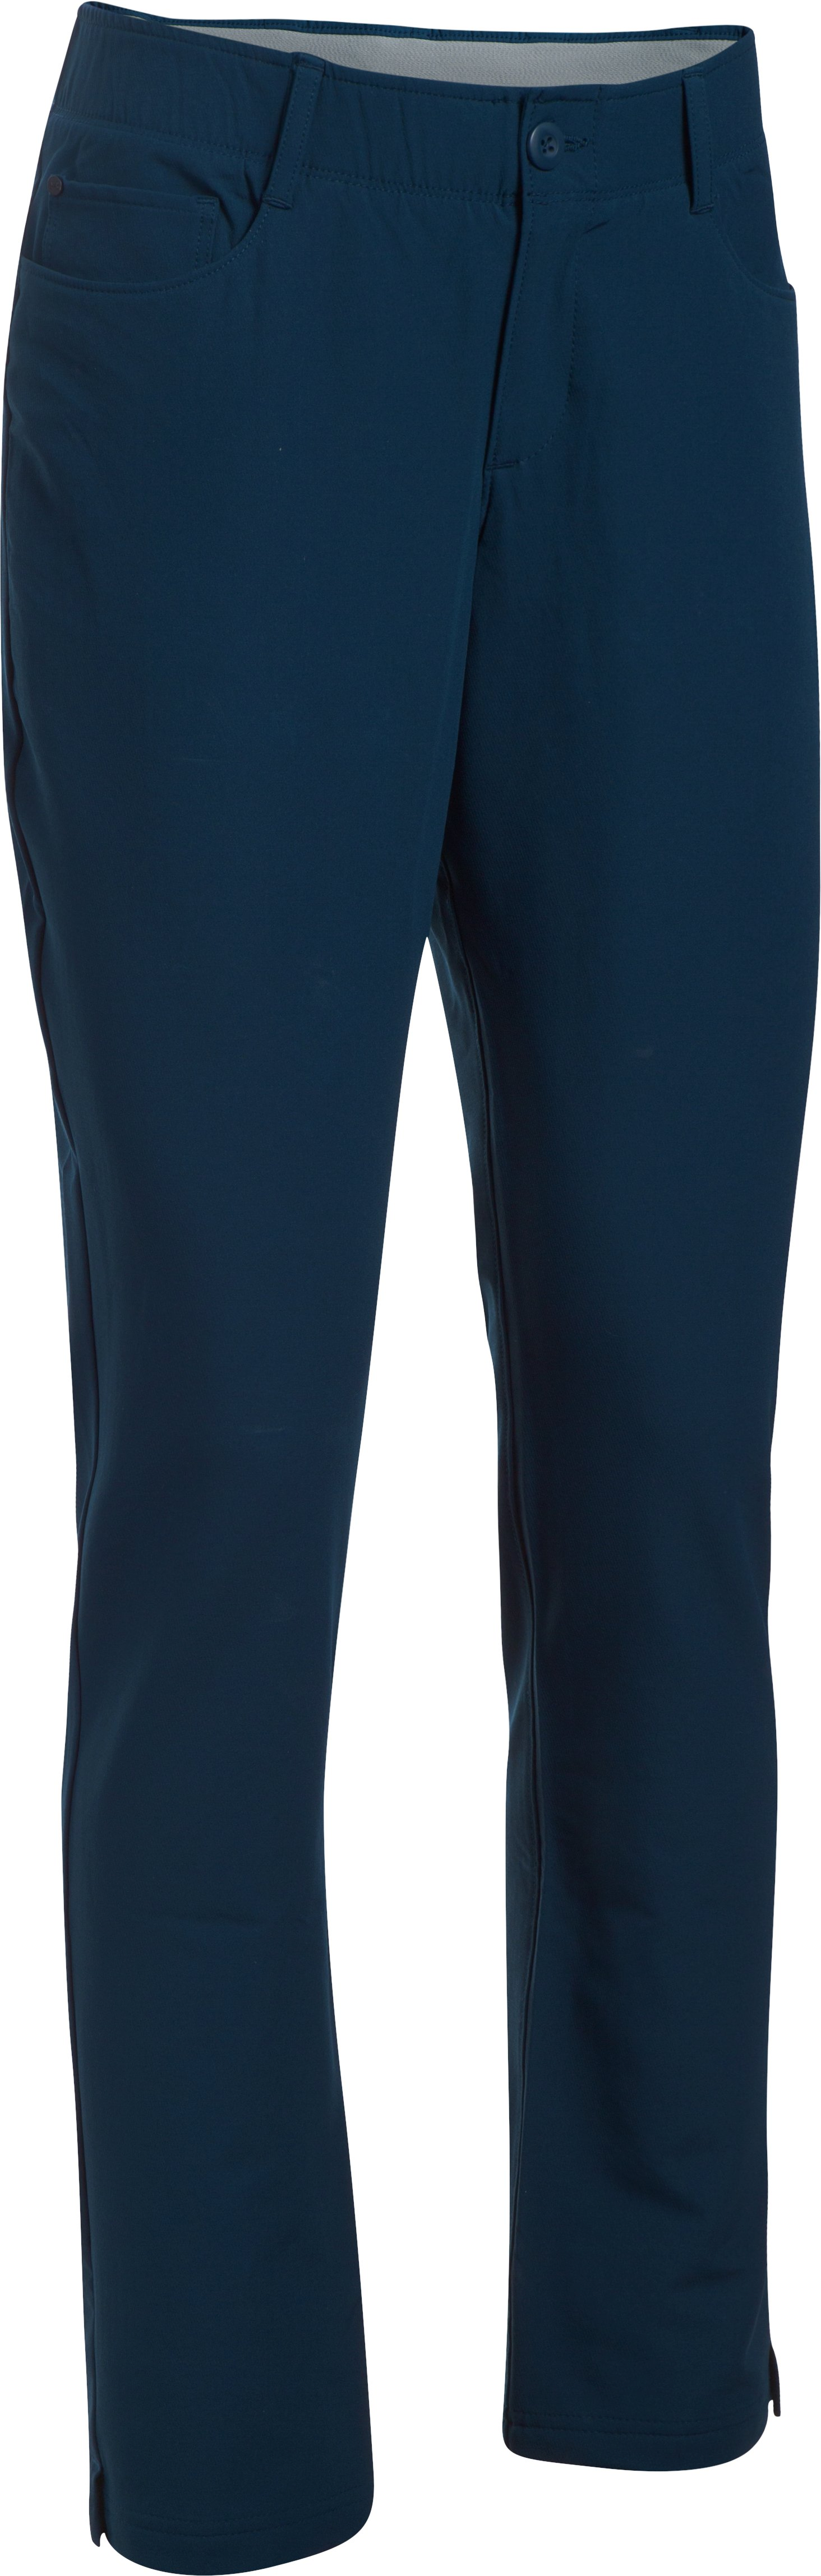 Women's ColdGear® Infrared Links Pant, Academy